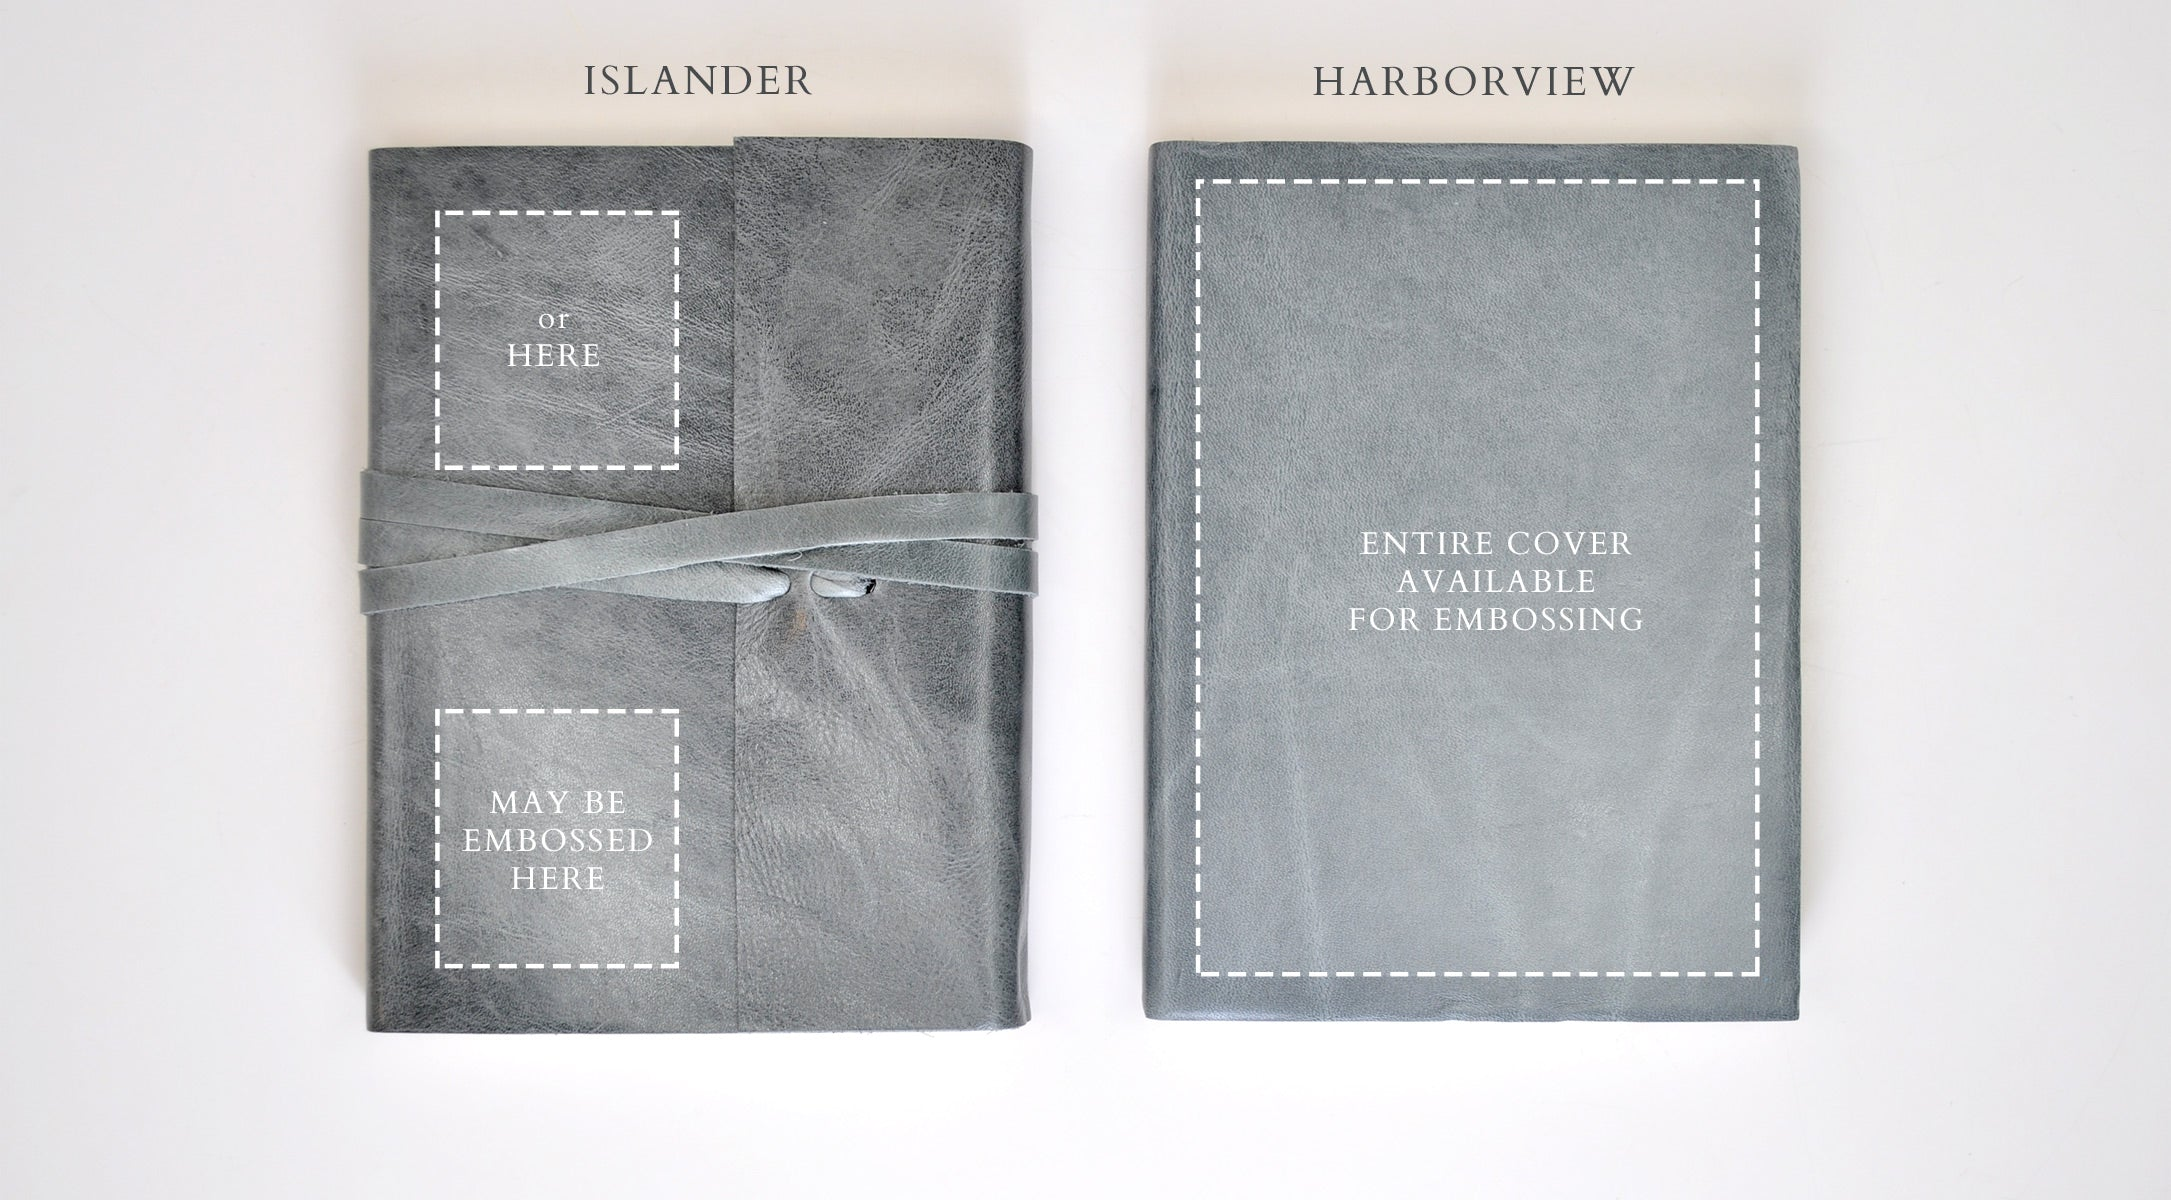 Areas available for embossing on Harborview and Islander Leather Journals.